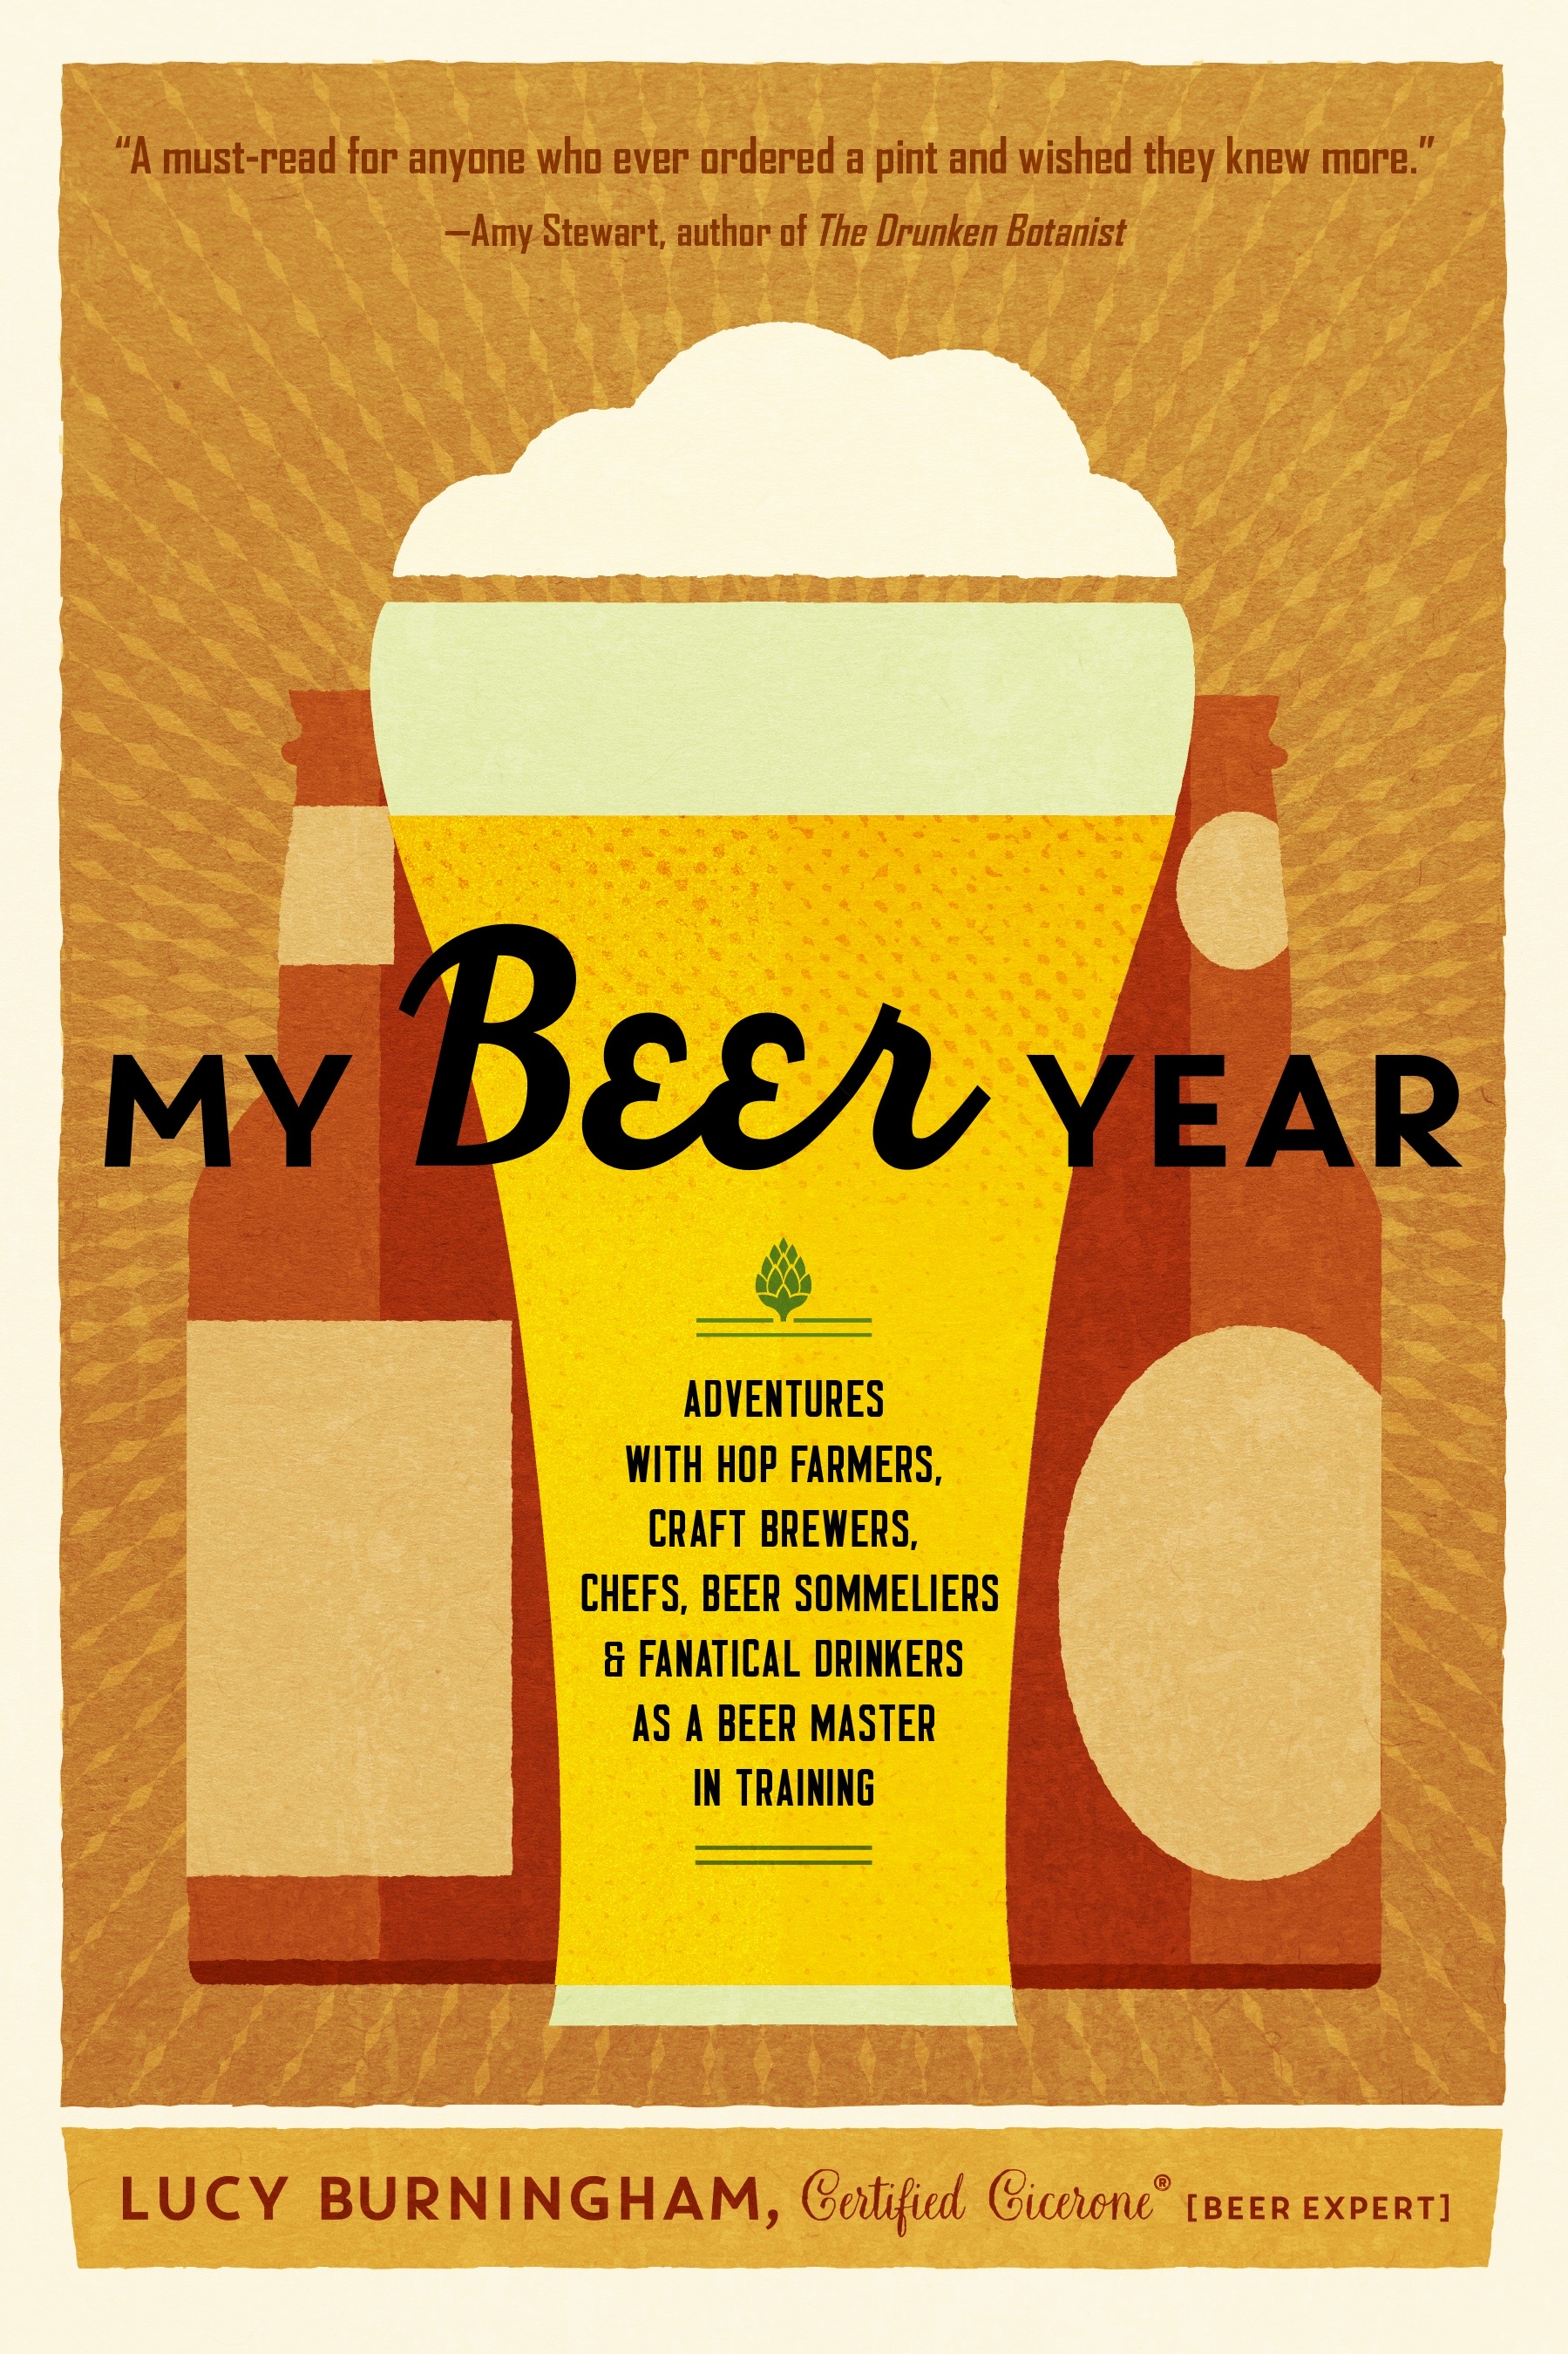 My Beer Year by Lucy Burningham